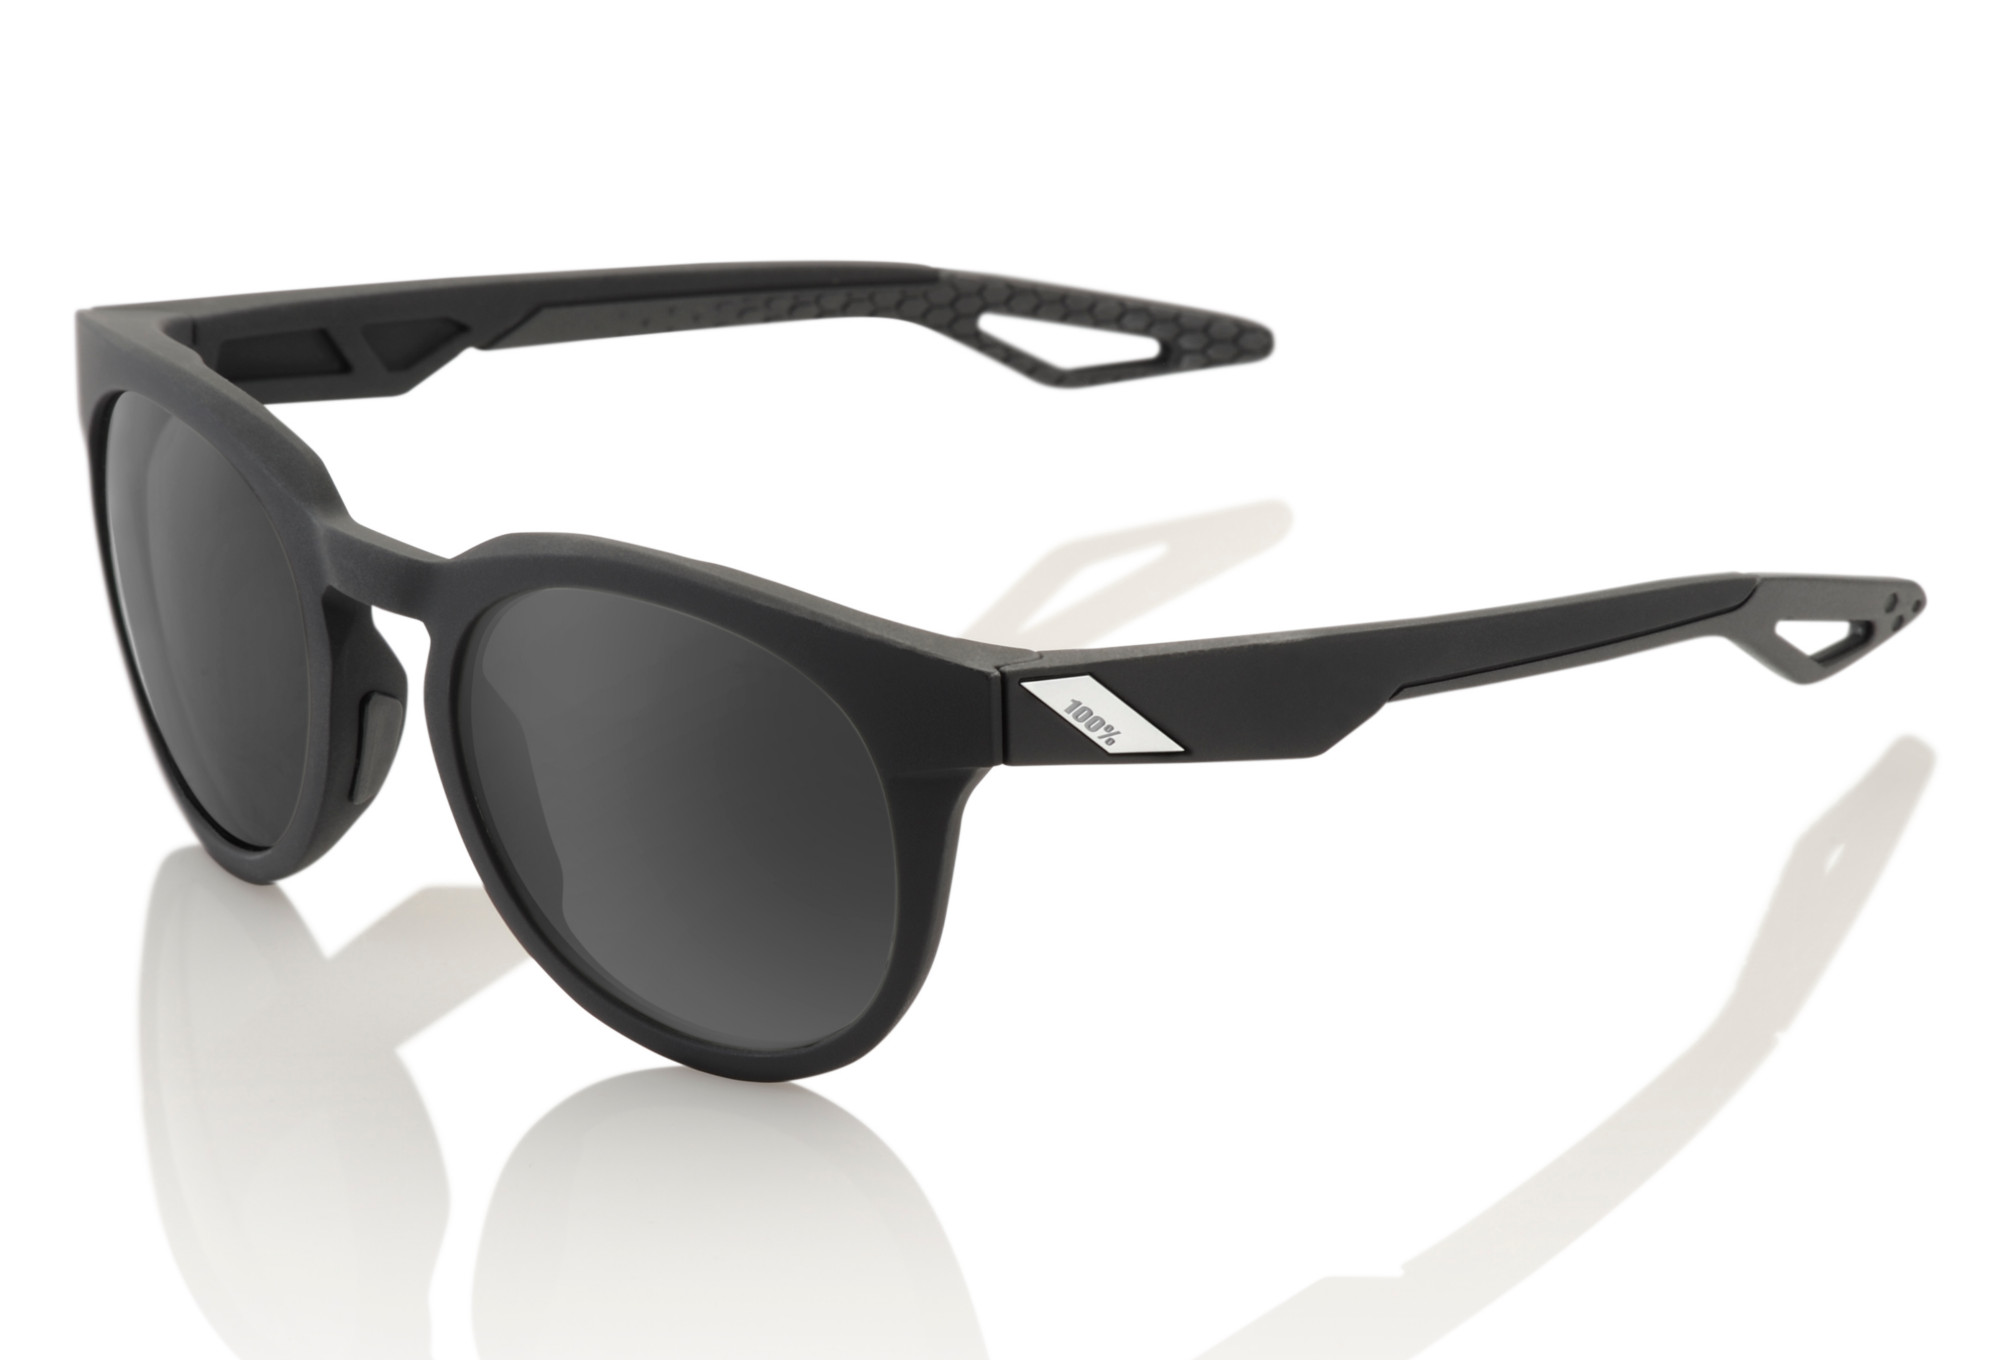 100% Campo Sunglasses Black Frame Polarized Black Lens